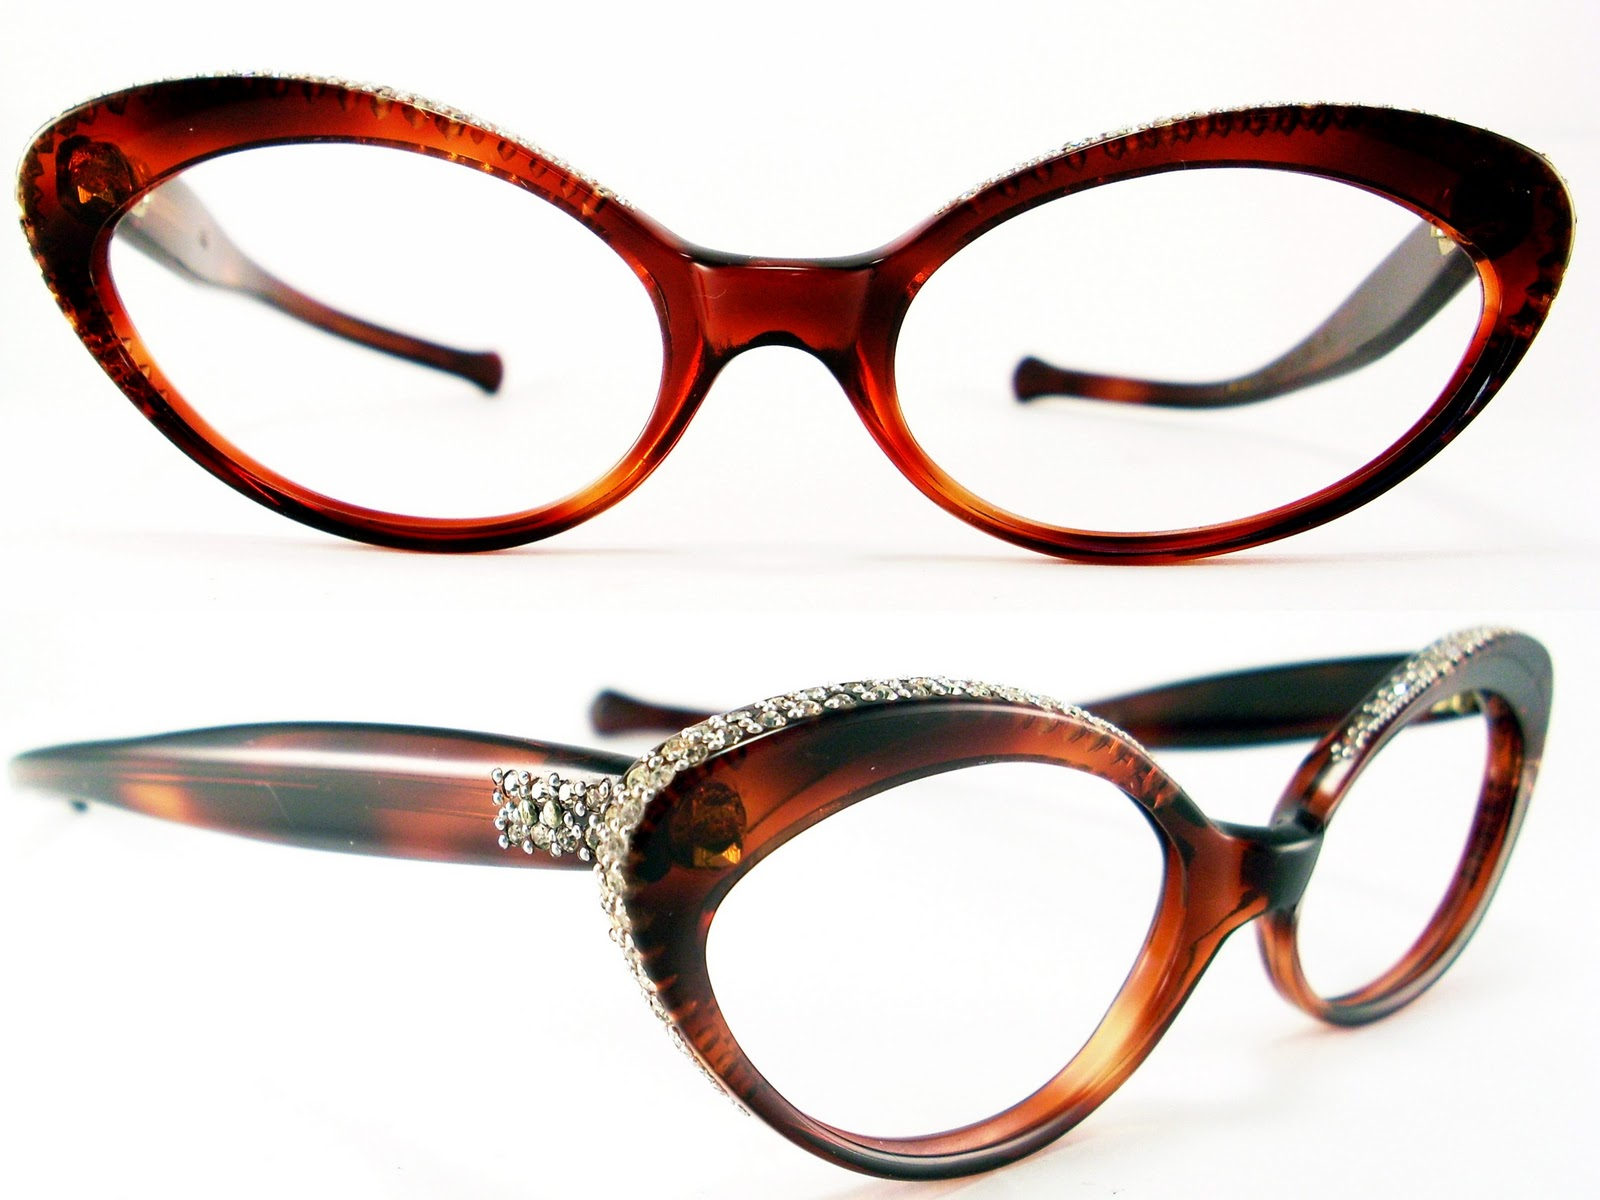 EYE FRAME GLASSES SIZE Glass Eyes Online